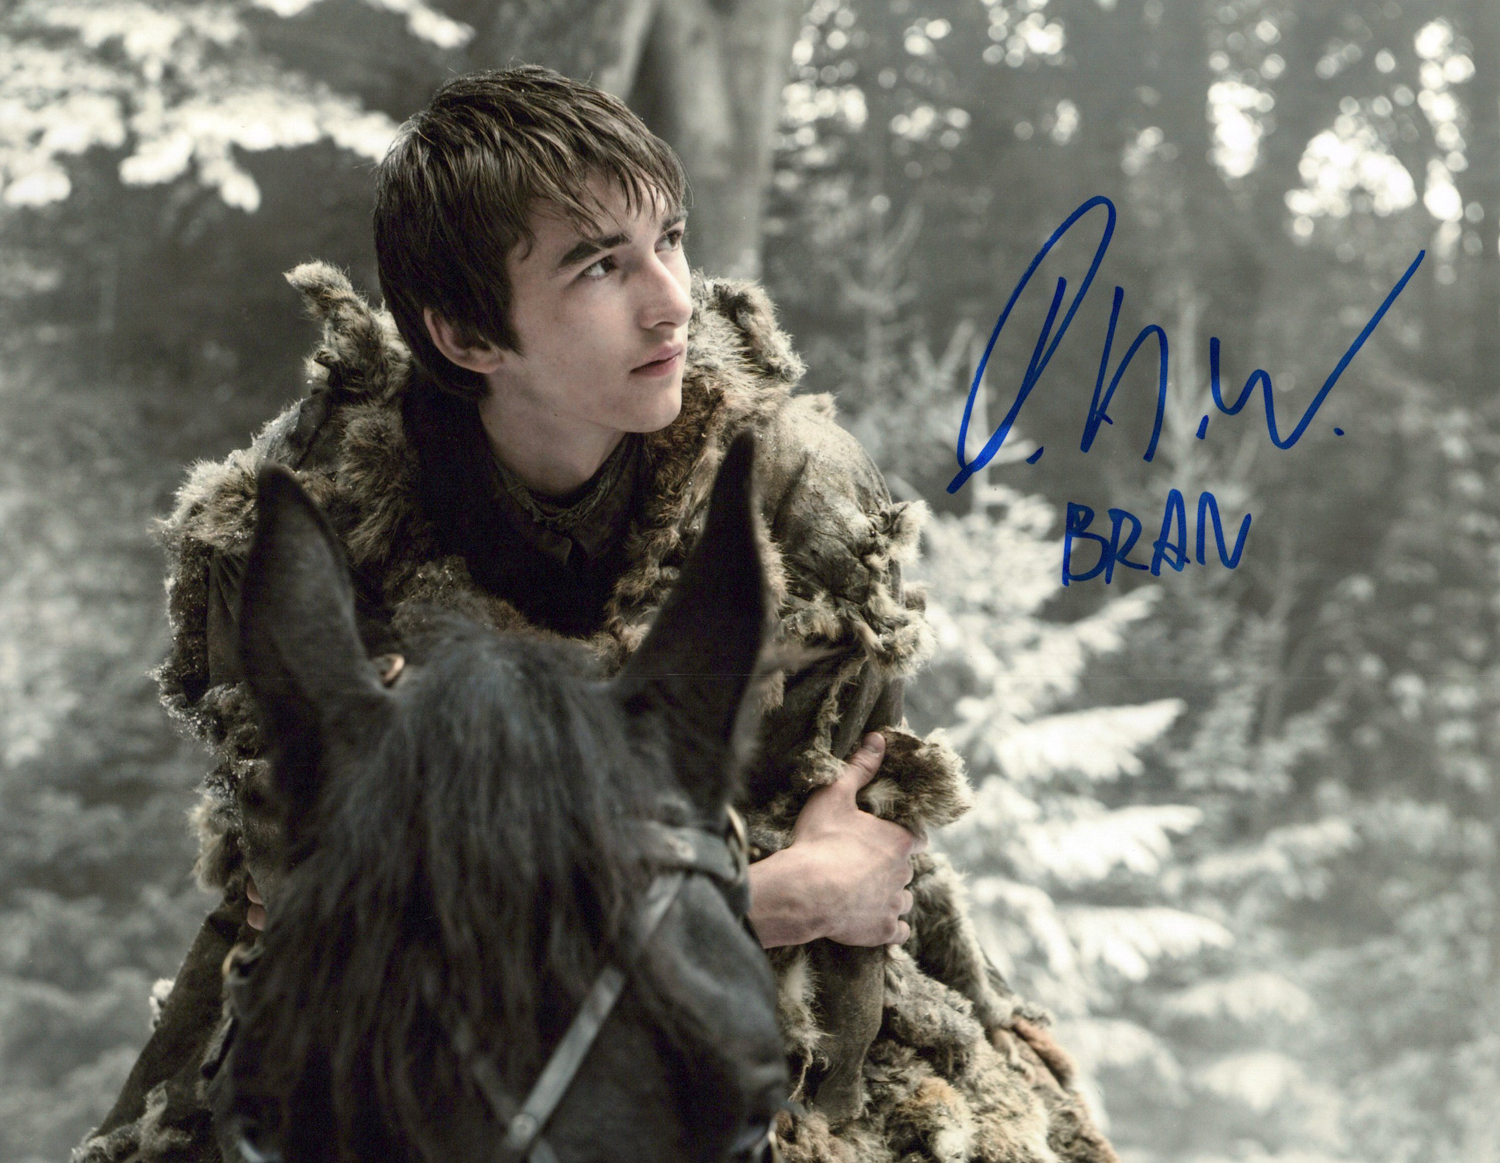 Isaac H. Wright Original Autogramm auf Foto 20x25cm - Game of Thrones